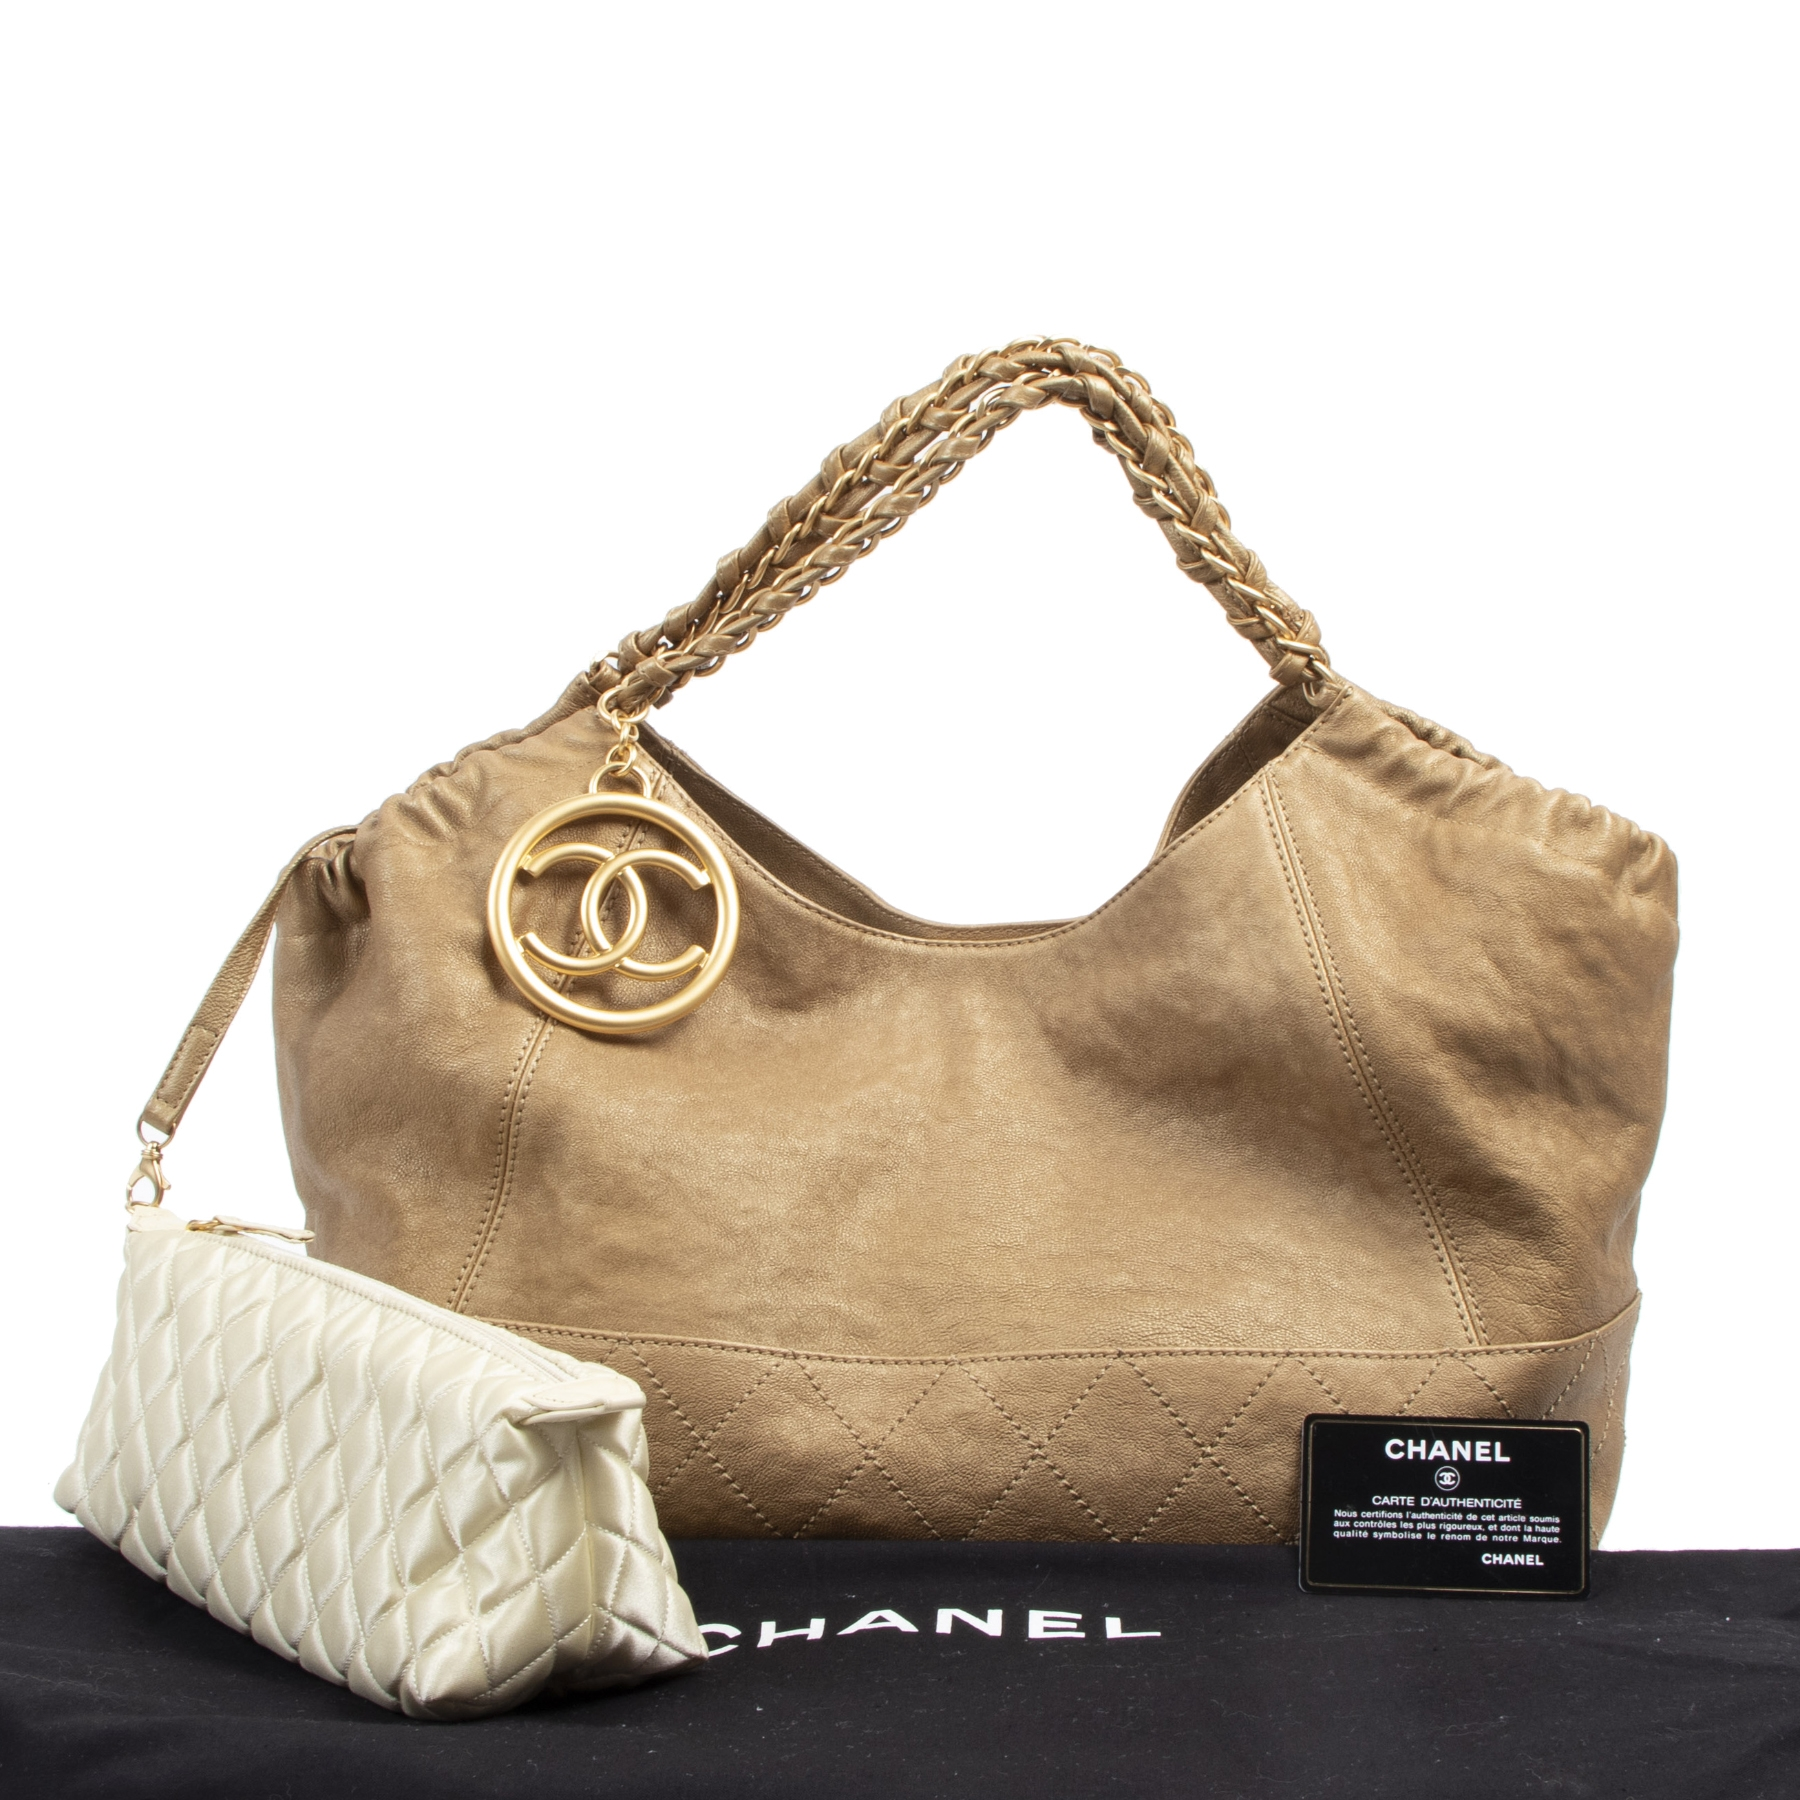 Authentieke tweedehands vintage Chanel Coco Cabas Gold Leather Bag koop online webshop LabelLOV